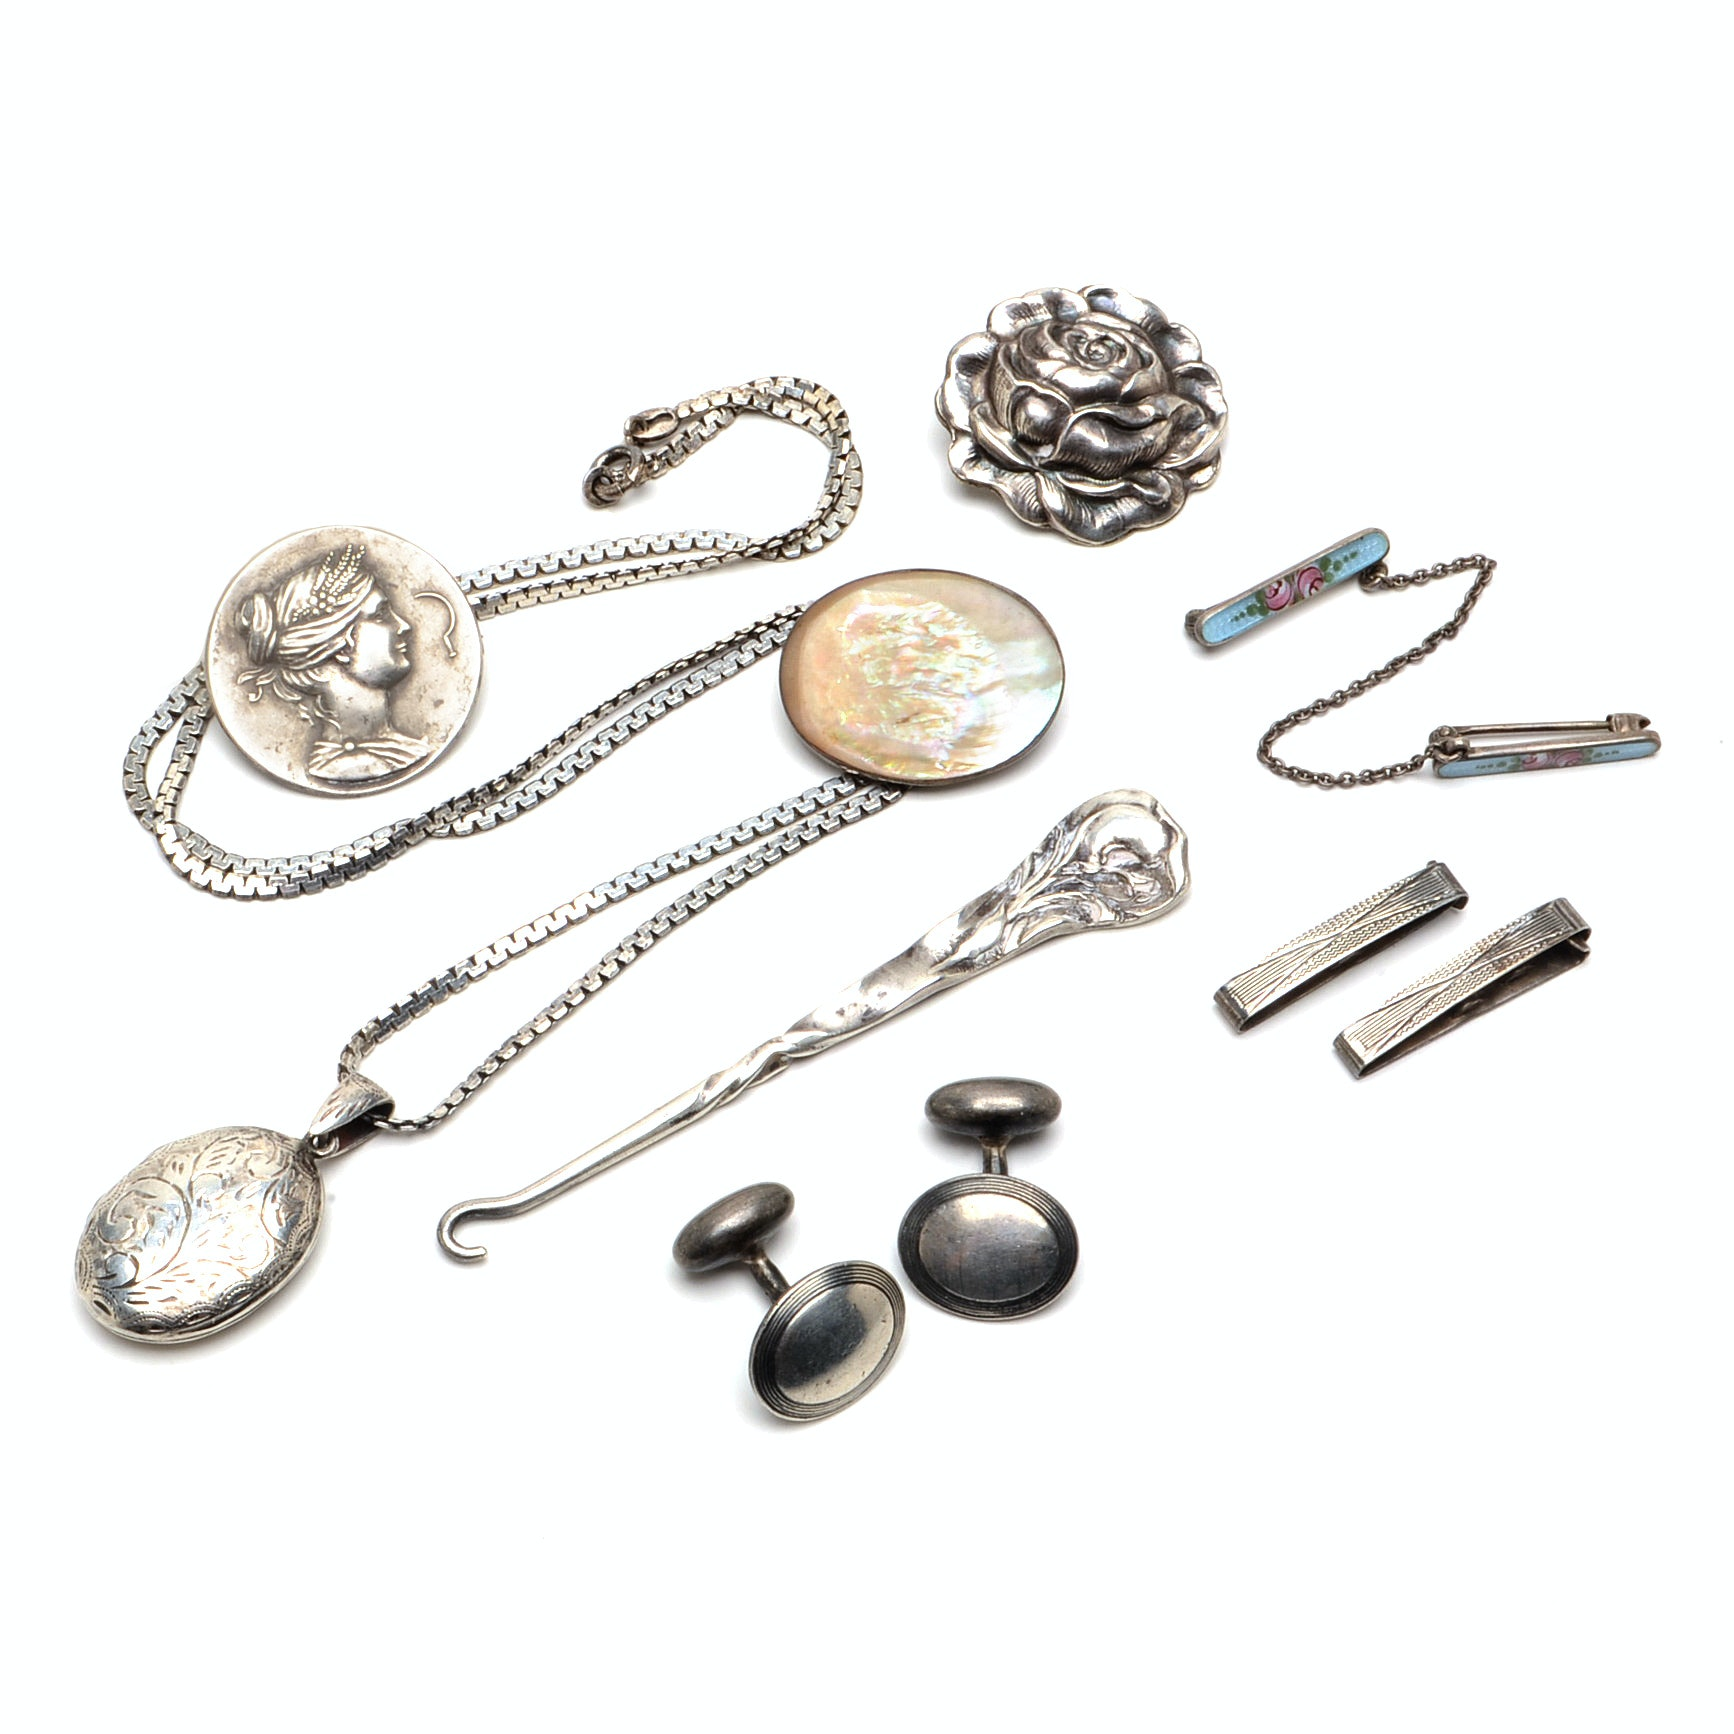 Whiting Buttonhook and Other Antique and Vintage Sterling Jewelry